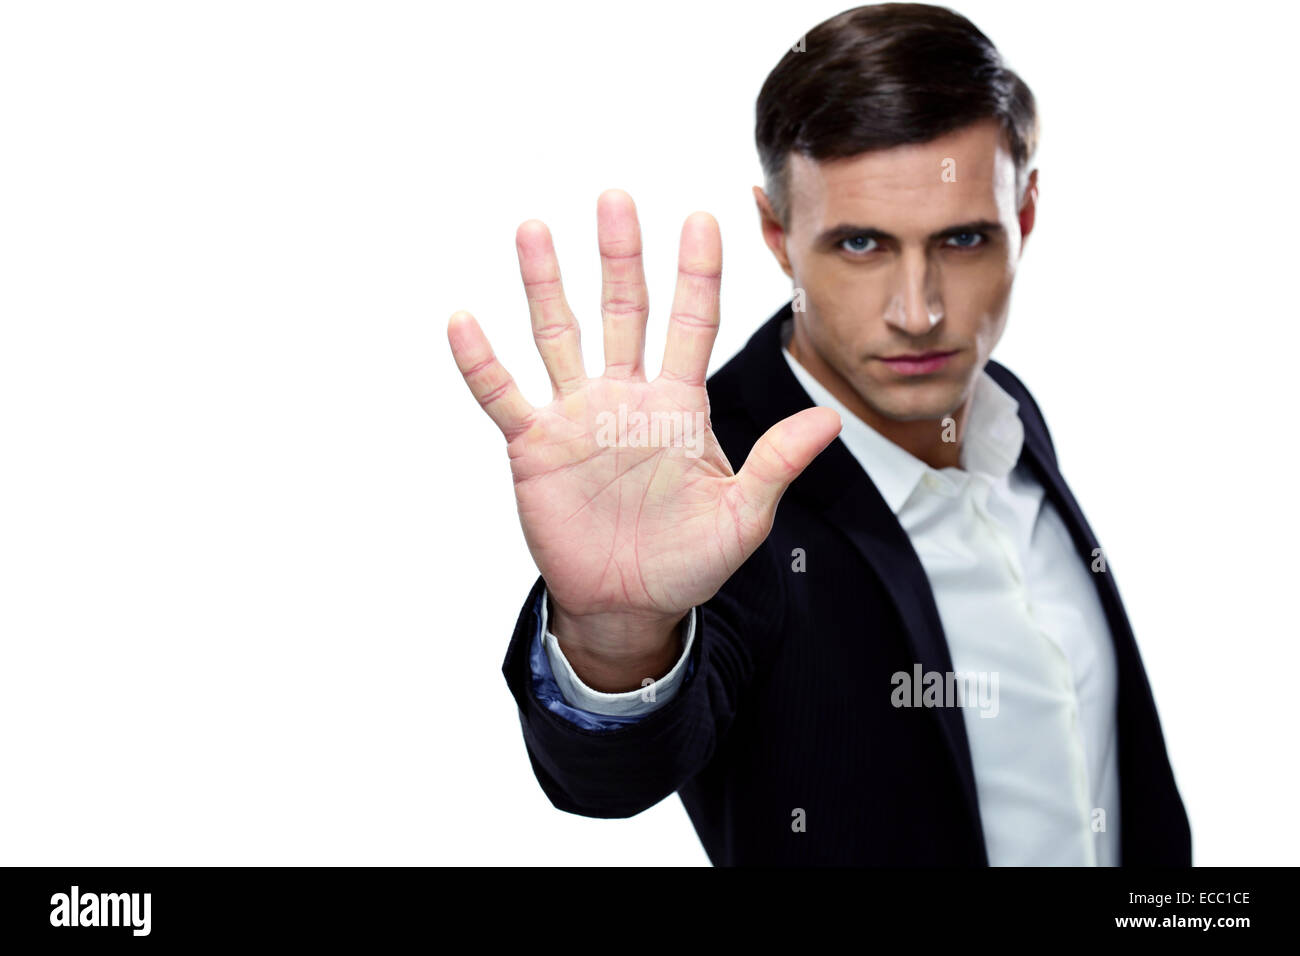 Buisnessman making stop gesture. Focus on a hand Stock Photo